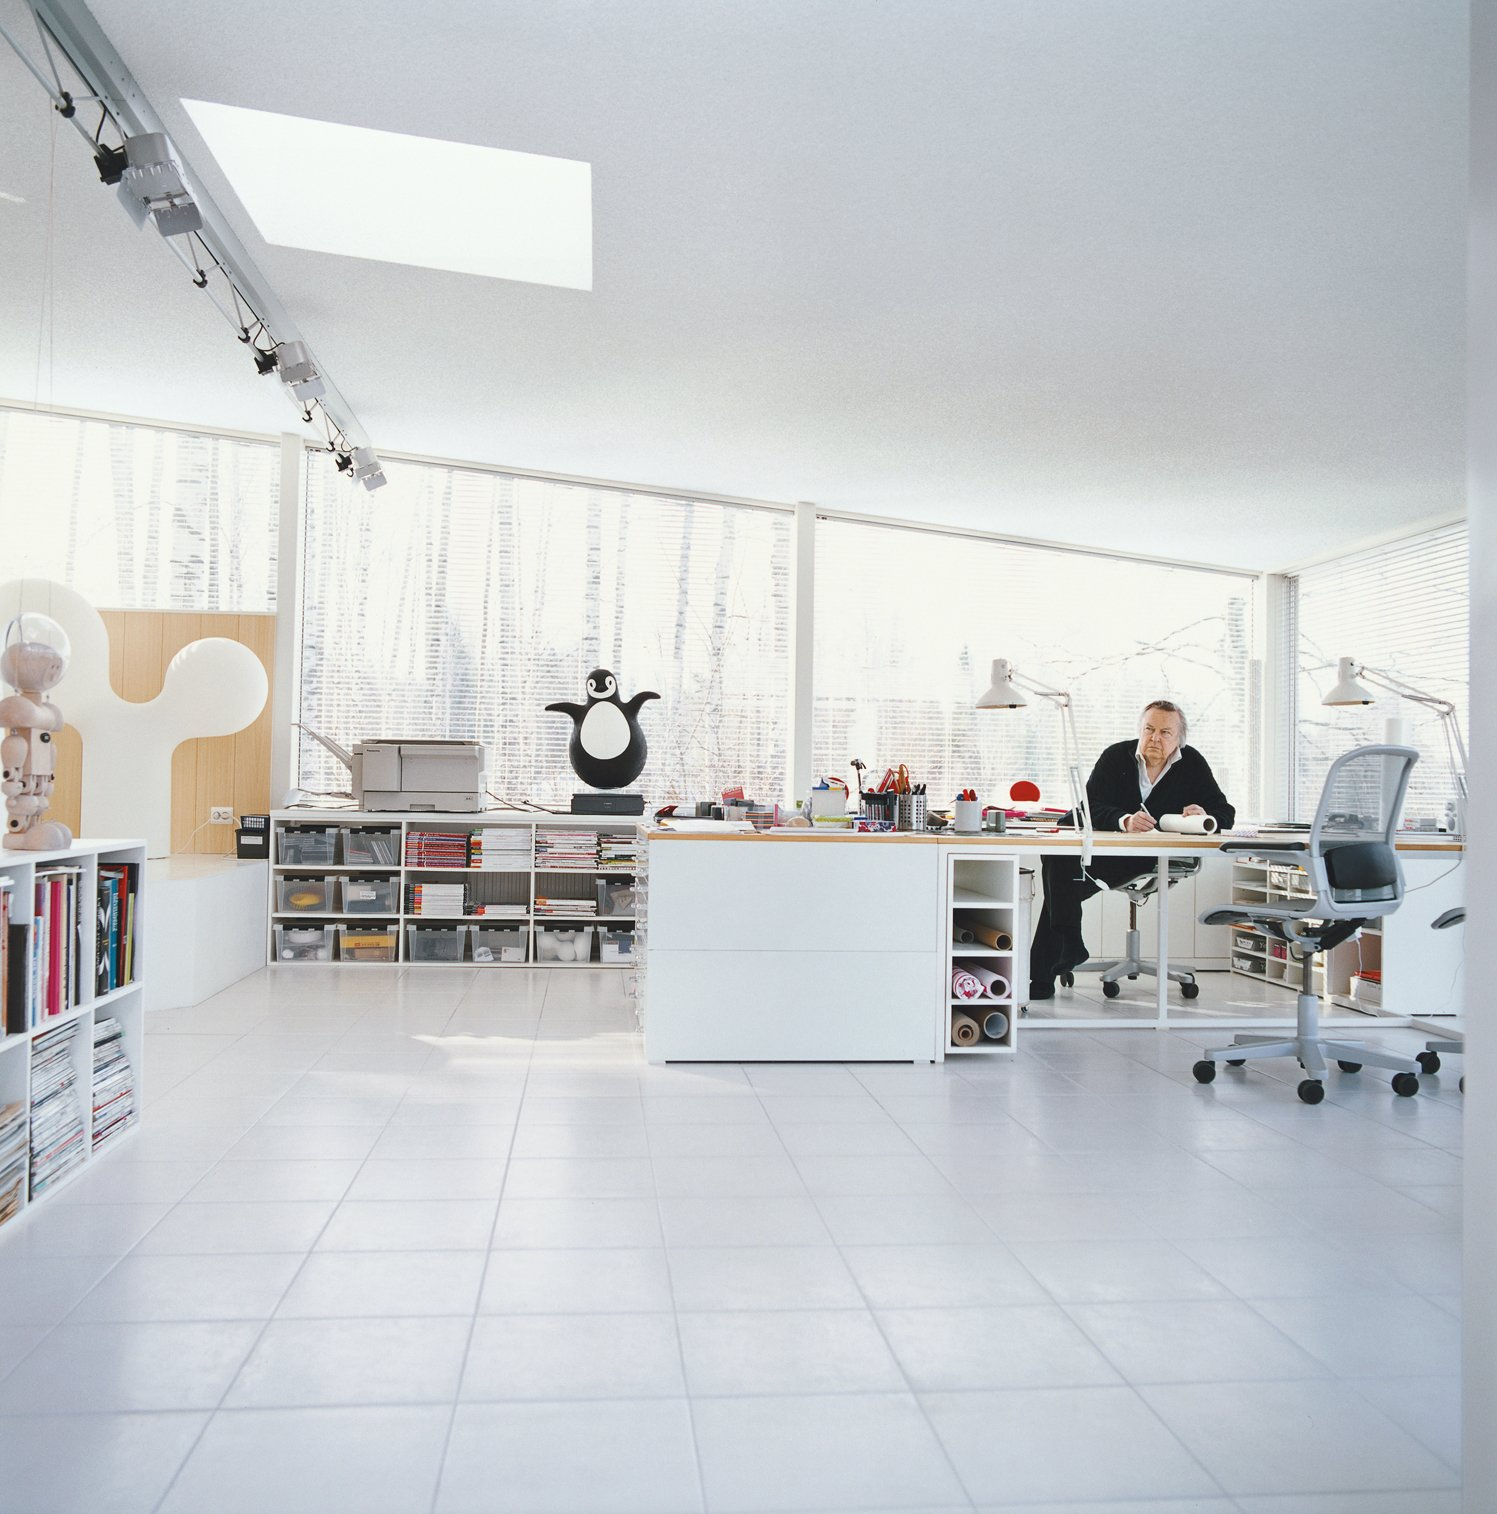 Roll of tracing paper in hand, Aarnio contemplates his next move in his home office addition.  Photo 8 of 13 in Furniture Designer Focus: Eero Aarnio